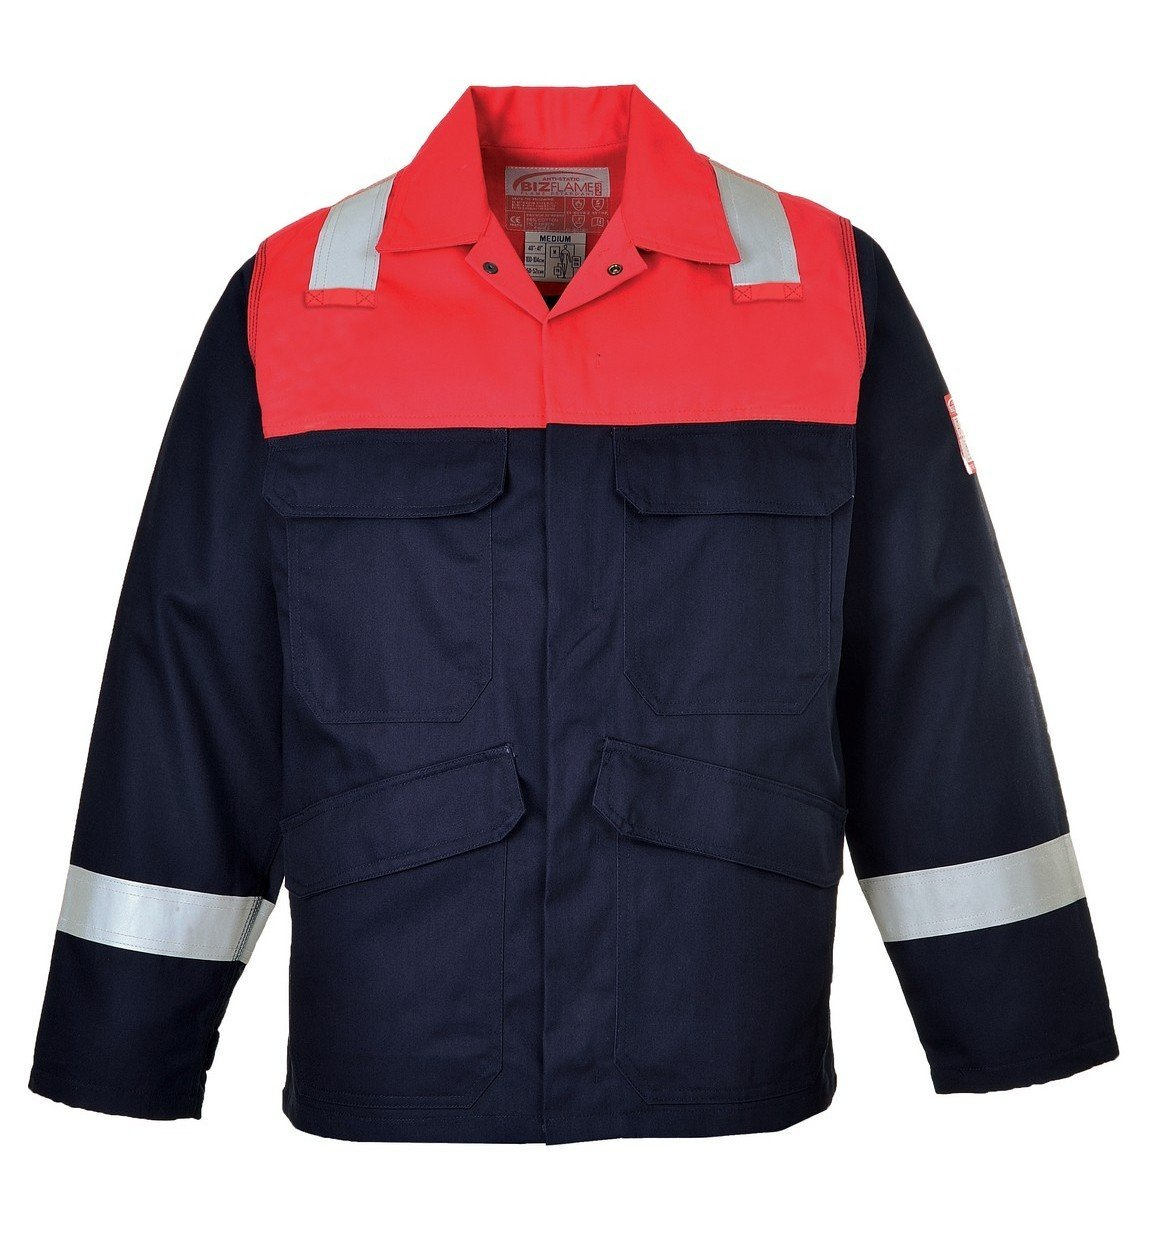 6d4c2fa90736 Portwest Flame Retardant Anti-Static Two-Tone Jacket FR55 Navy Blue and Red  Colour